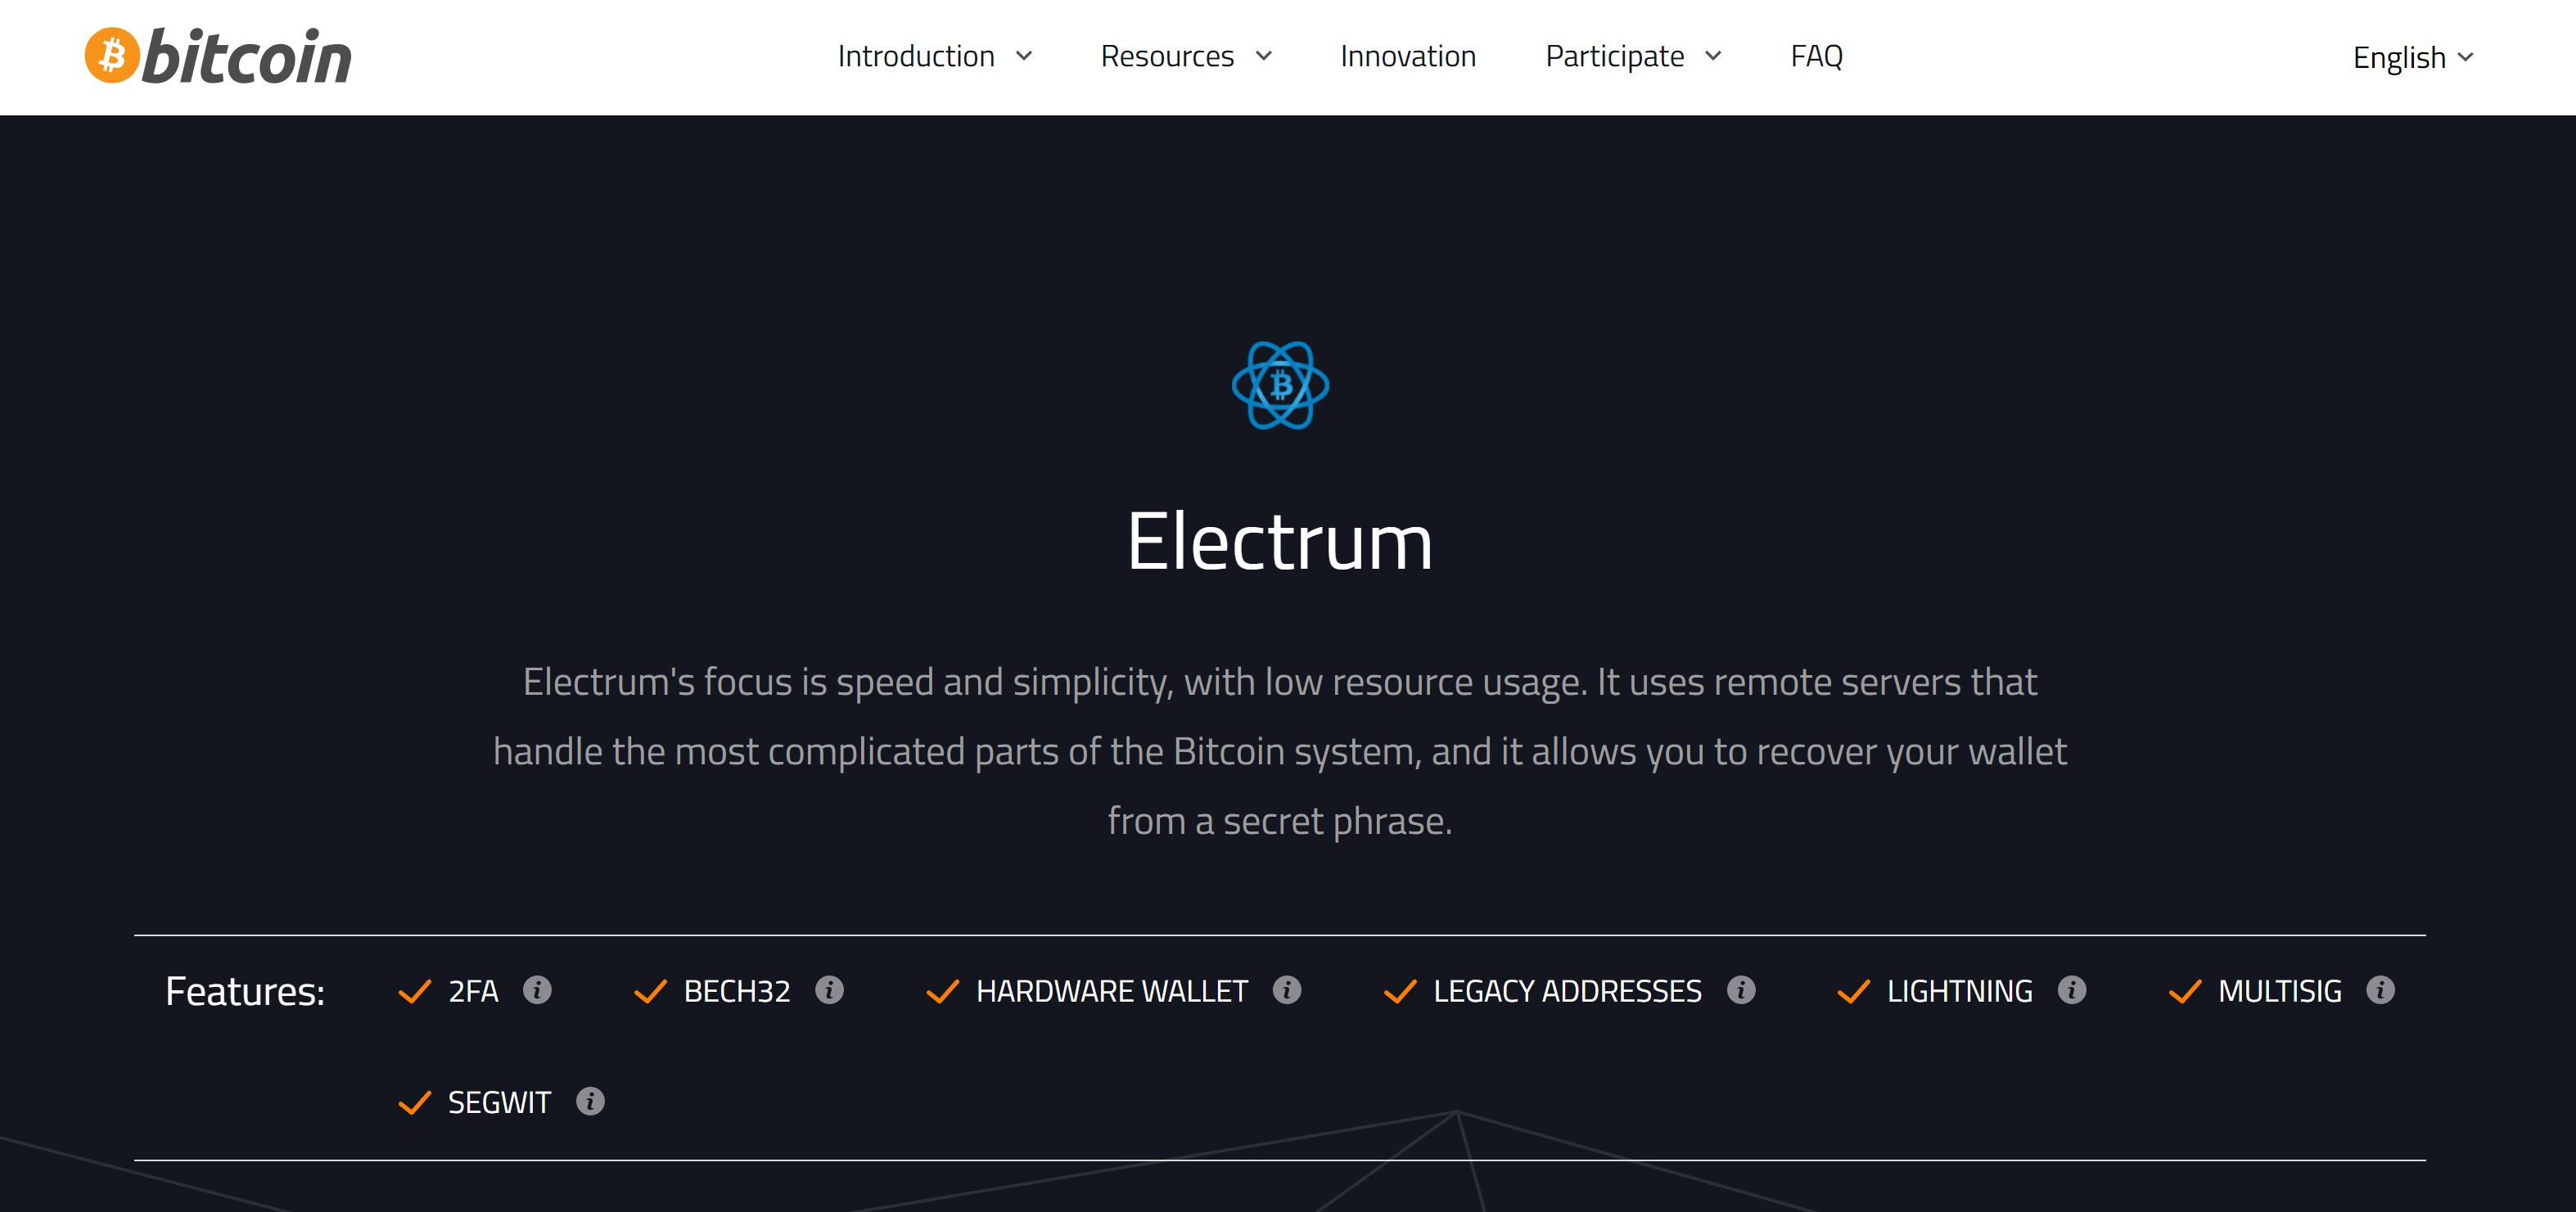 Aanbeveling Electrum Wallet Bitcoin-website